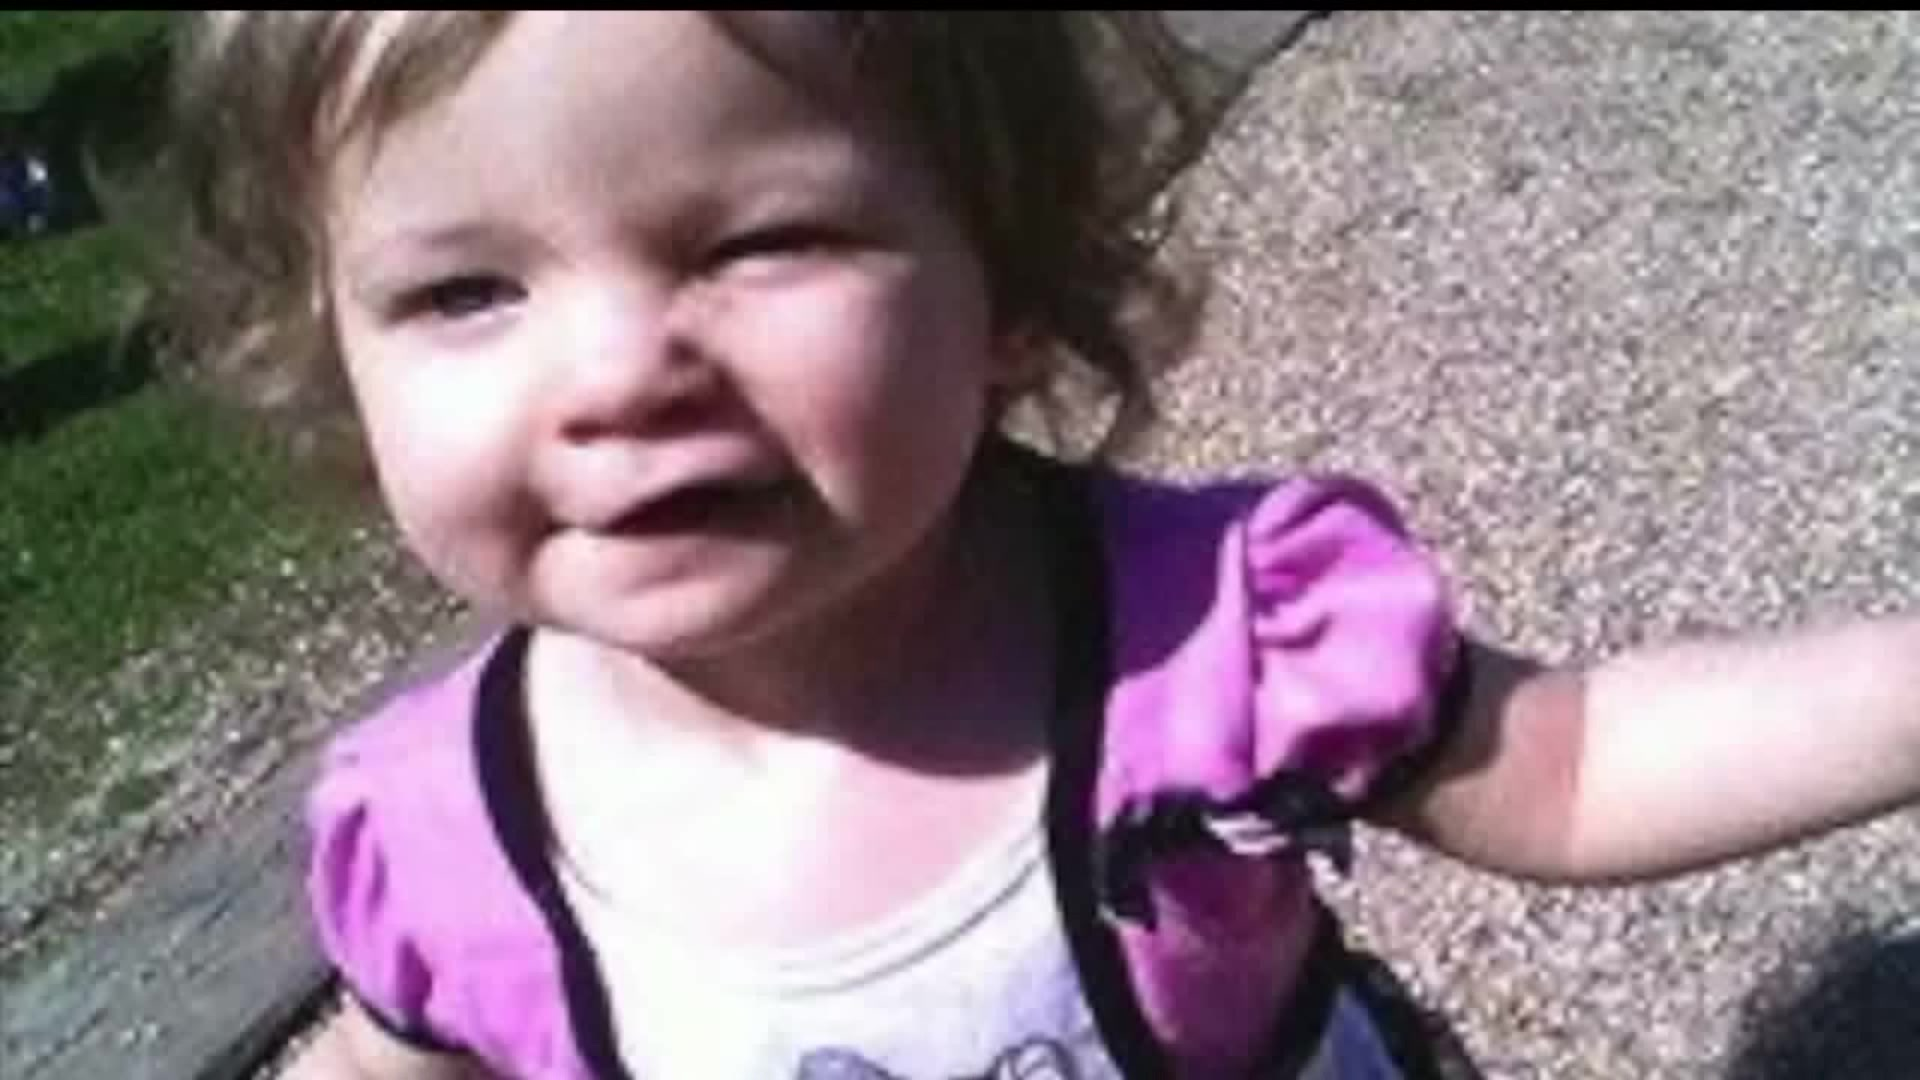 Body of Missing 1-Year-Old Found, Suspect Arrested